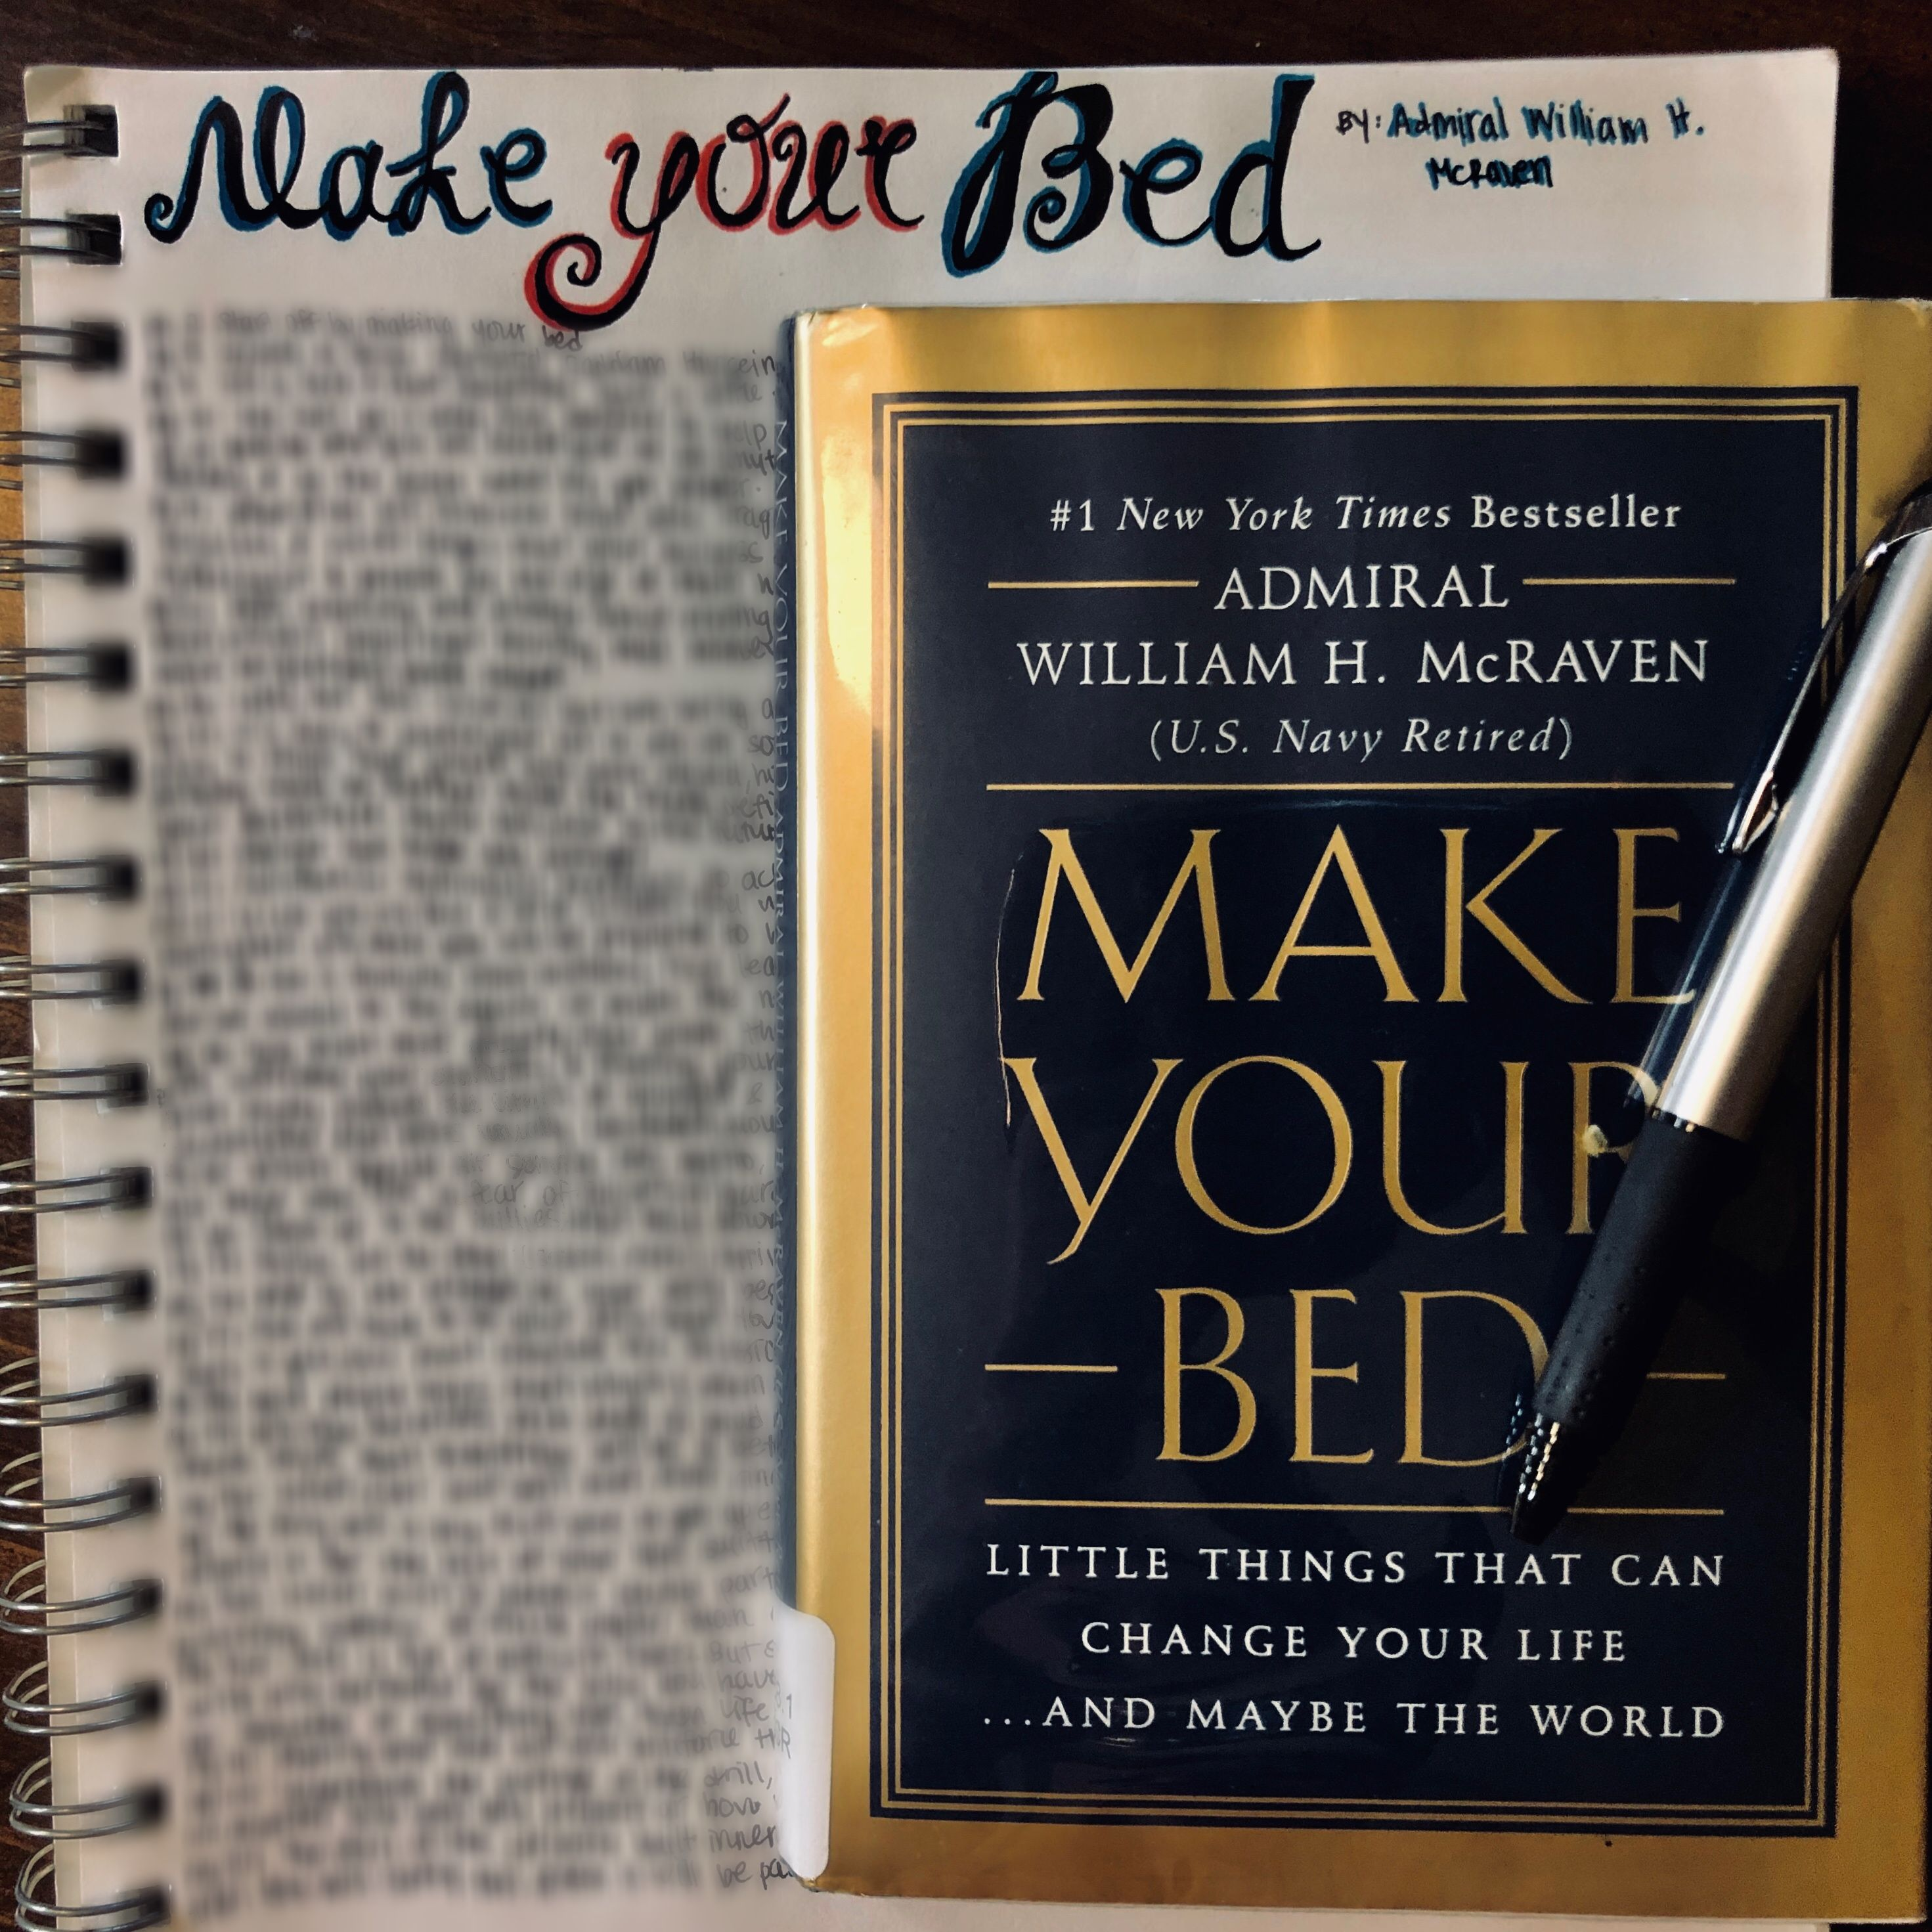 Make Your Bed Little Things That Can Change Your Life And Maybe The World Life How To Make You Changed